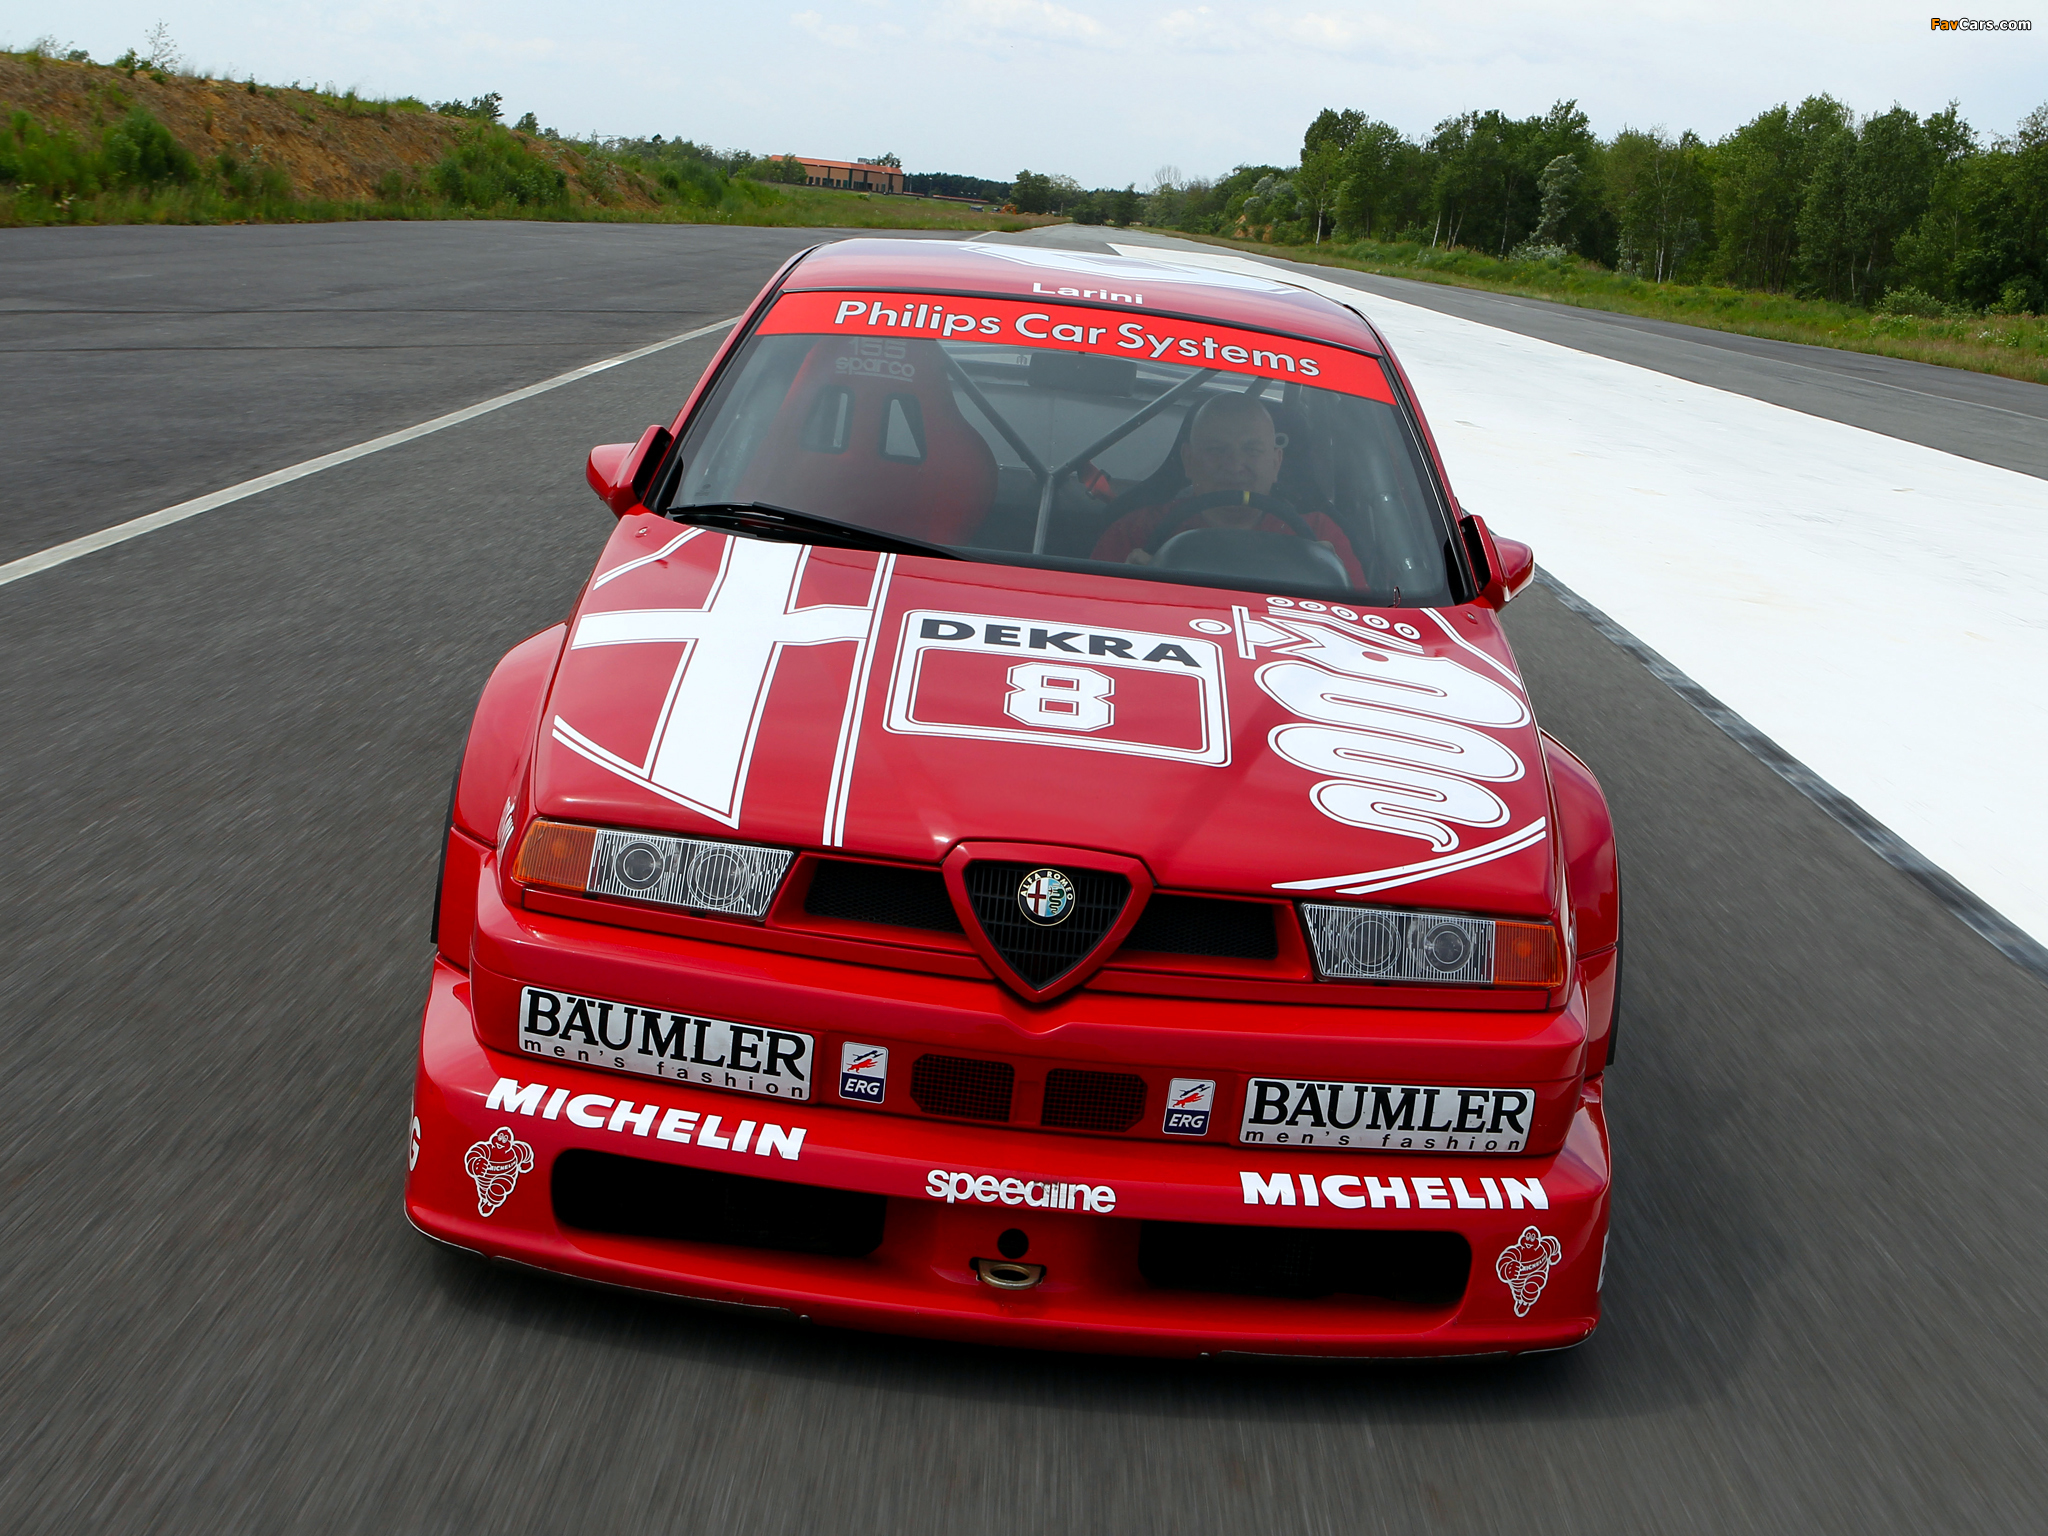 Alfa romeo 159 25 v6 for sale